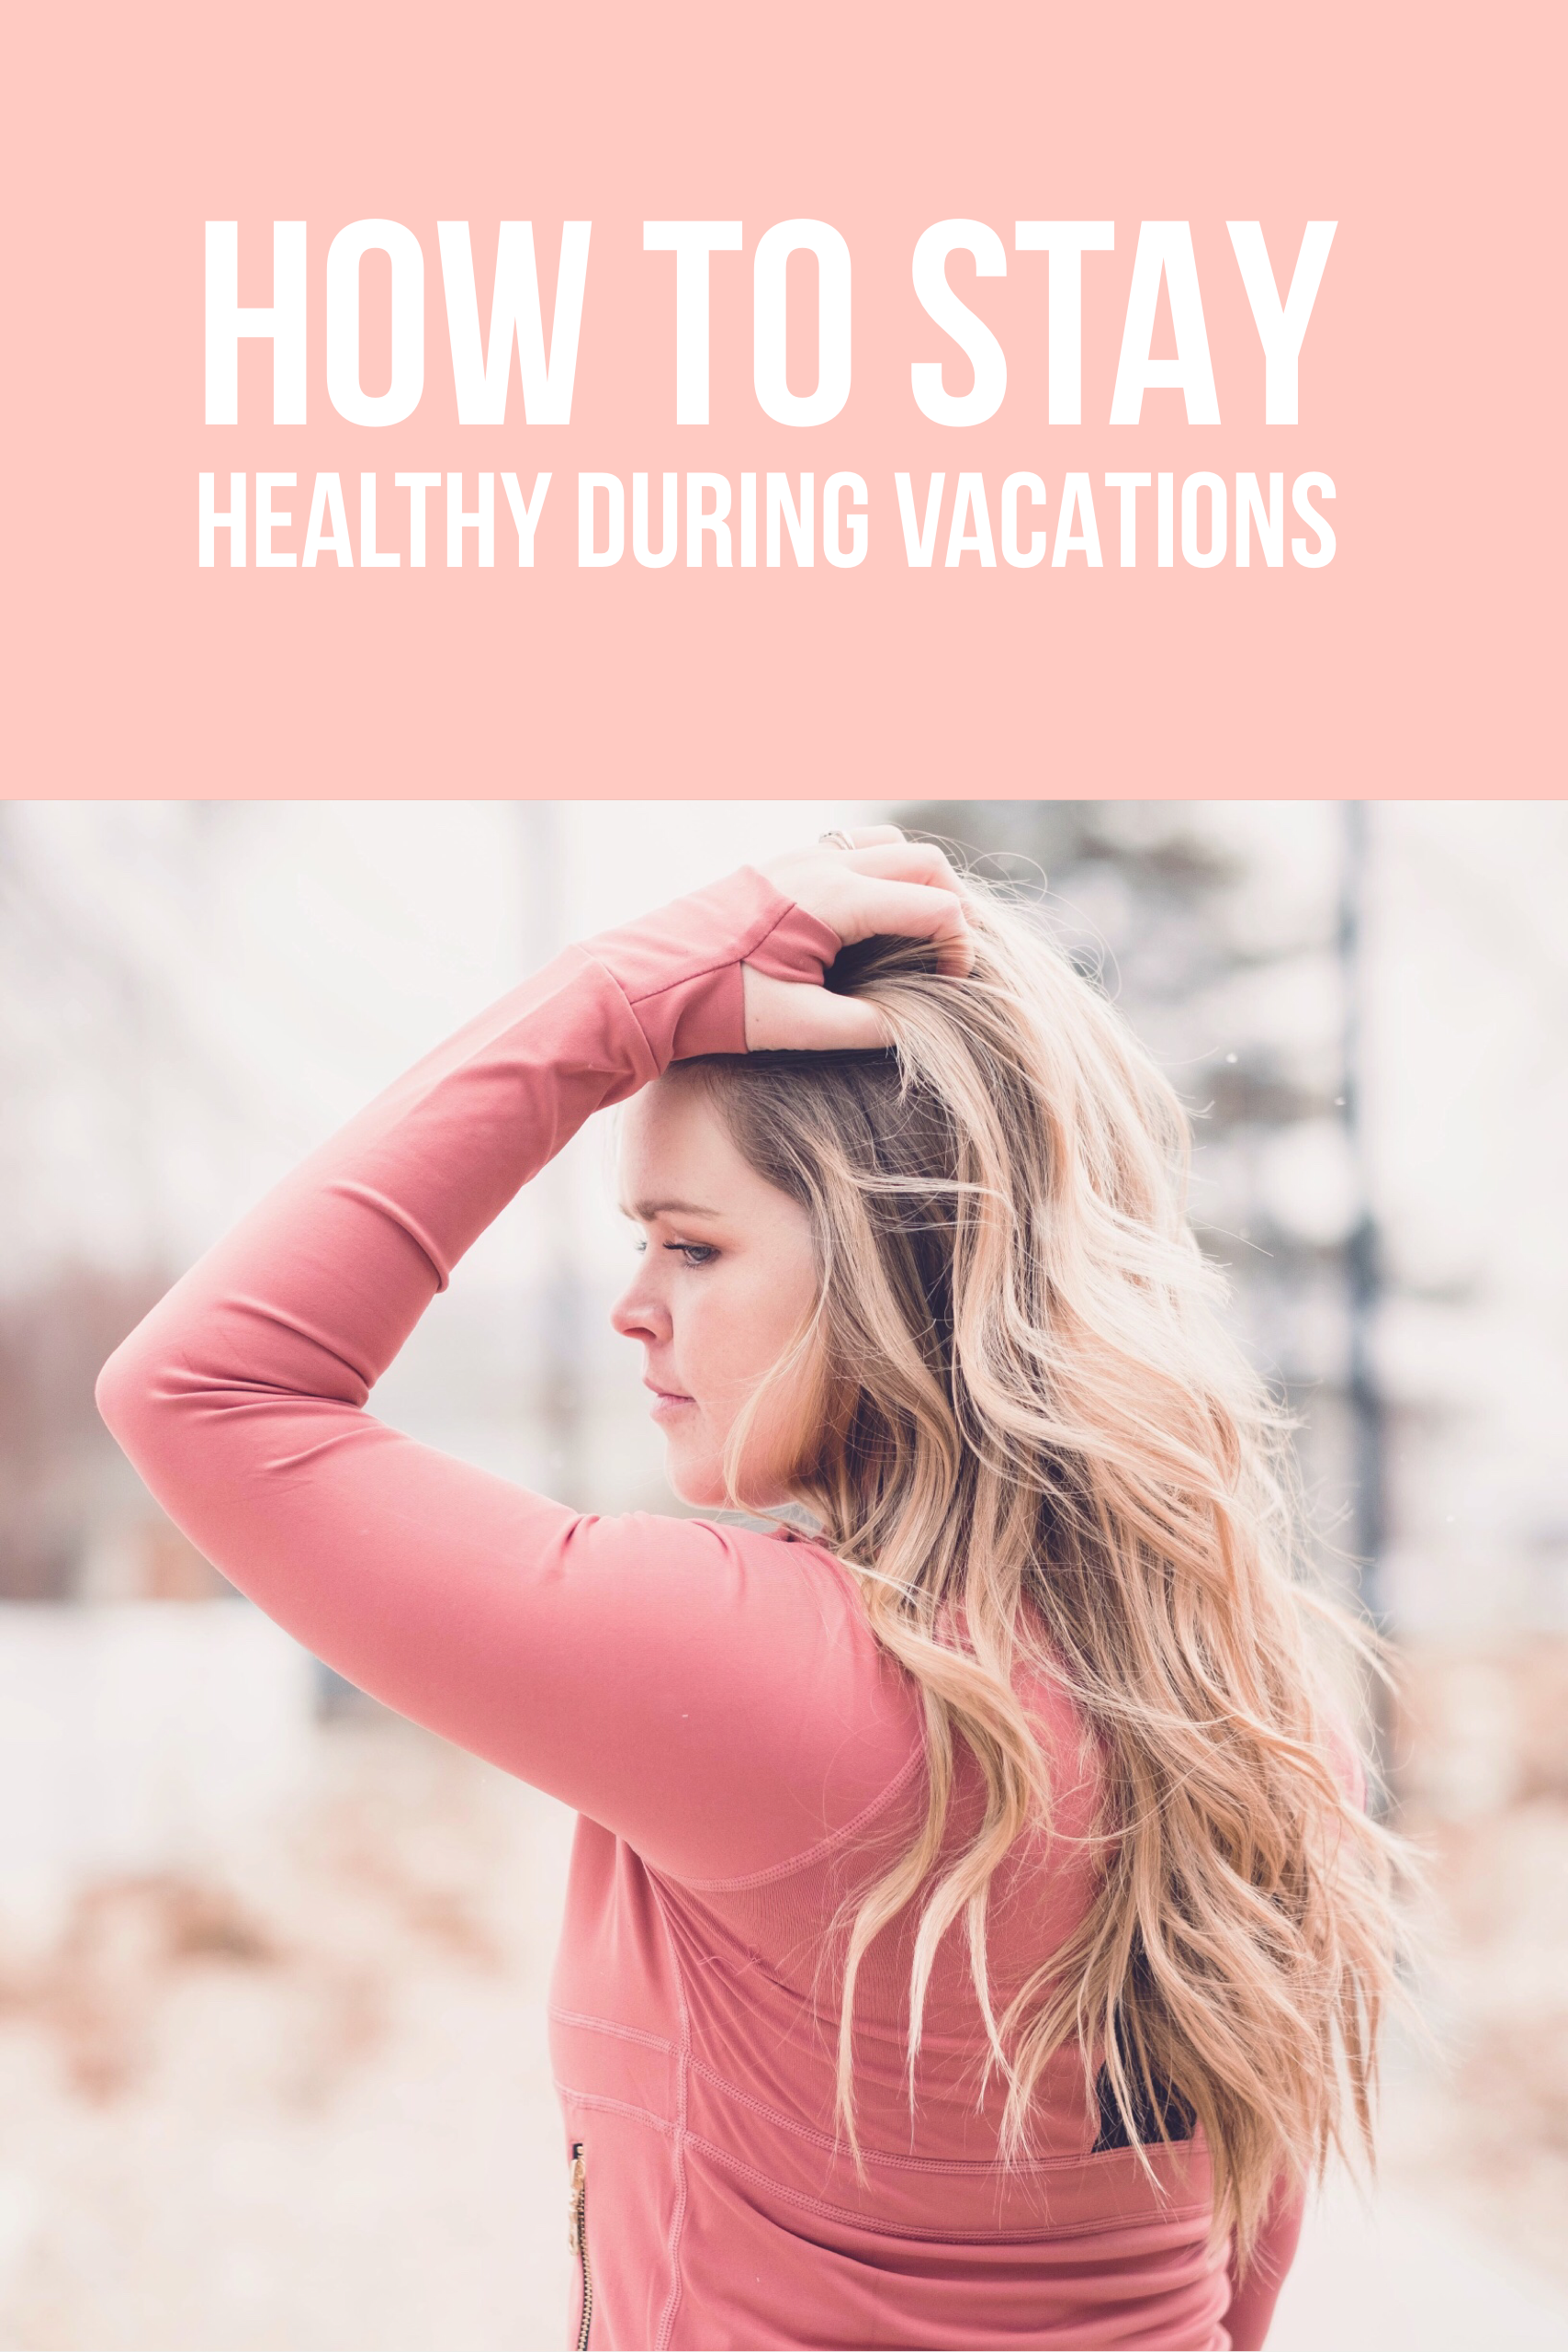 It's hard to stay healthy when you travel, but I have a few tips and tricks so you don't destroy your diet. There are many ways you can still go on an adventure without suffering too much from jet lag or lack of sleep. The key is to stick to these ideas for a healthy life.